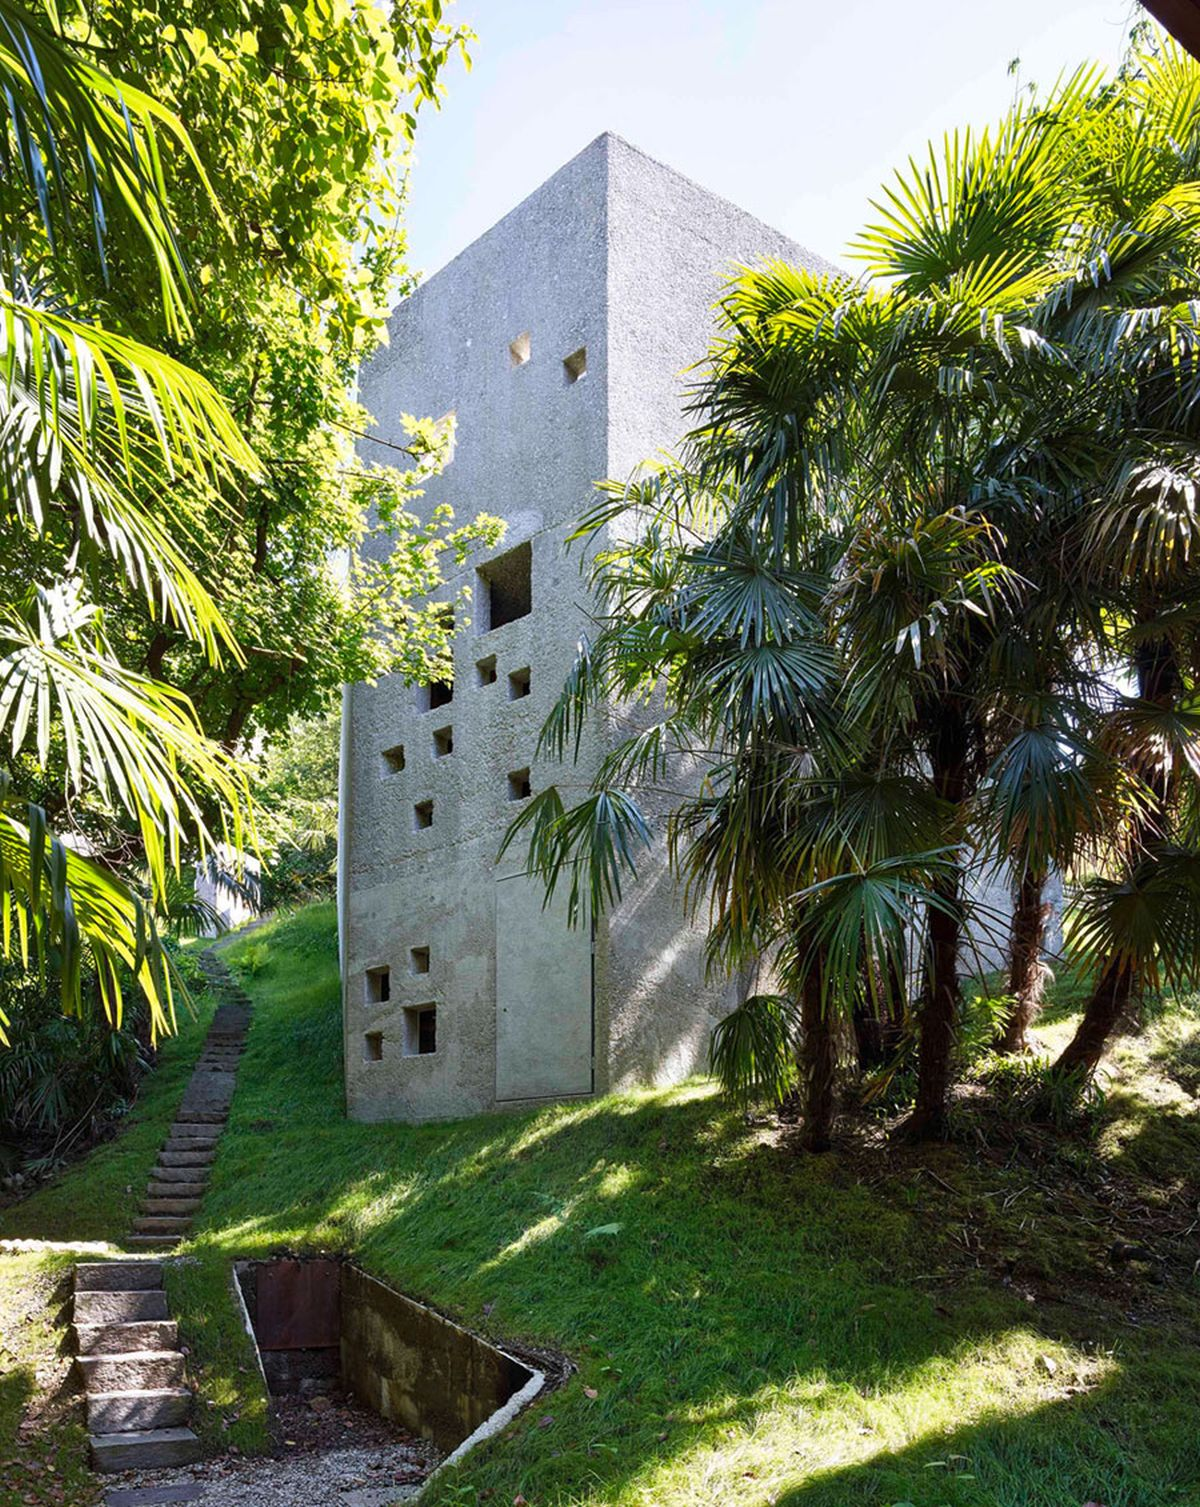 Concrete House in Caviano tall and narrow tower